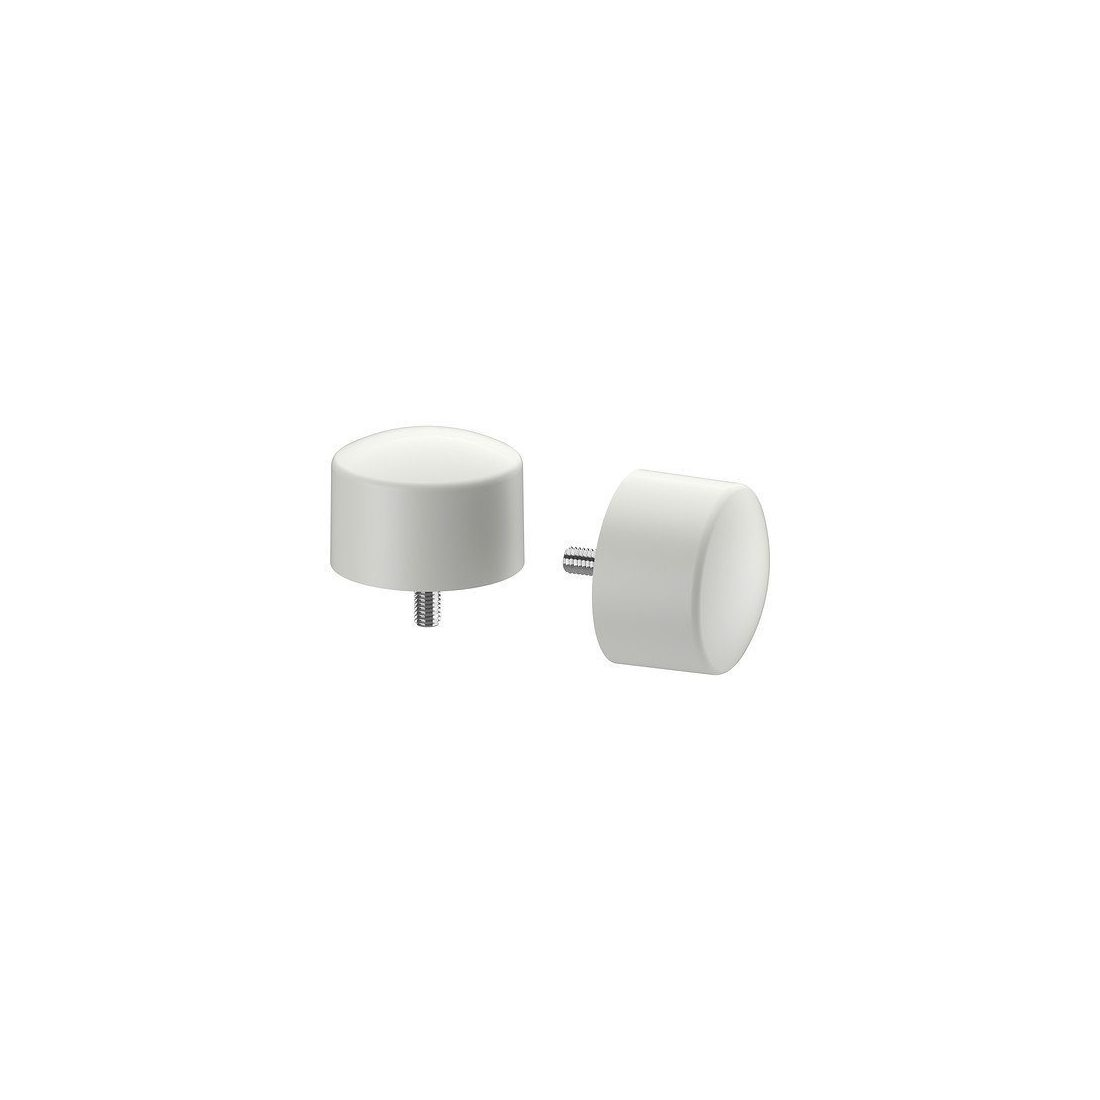 IKEA RAFFIG - Embout, blanc paquet / 2